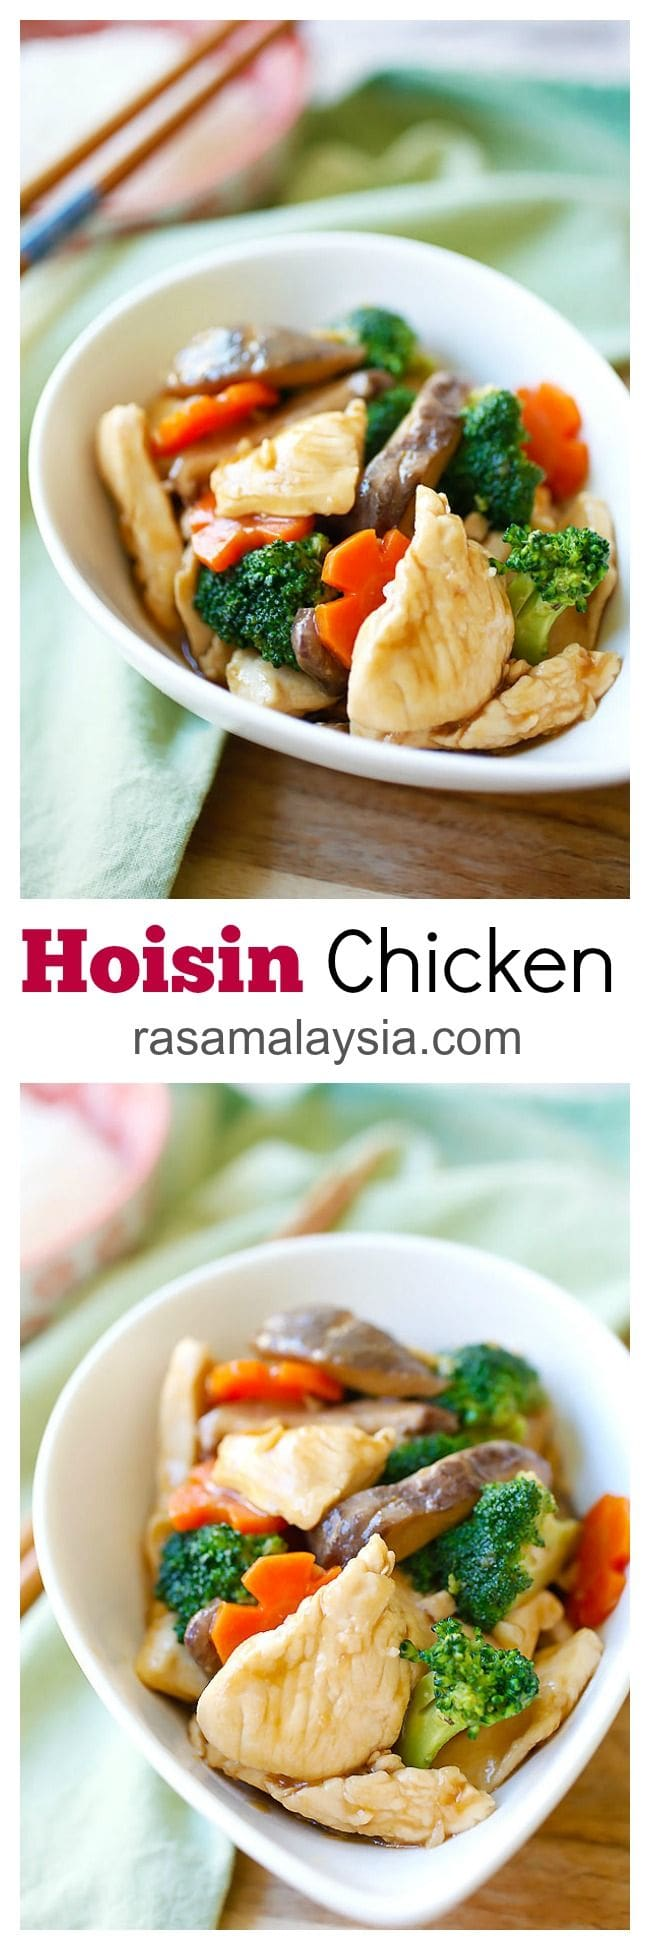 Hoisin chicken – easy chicken stir-fry with vegetables in a savory Hoisin sauce. This recipe takes 20 minutes with easy-to-get store ingredients | rasamalaysia.com